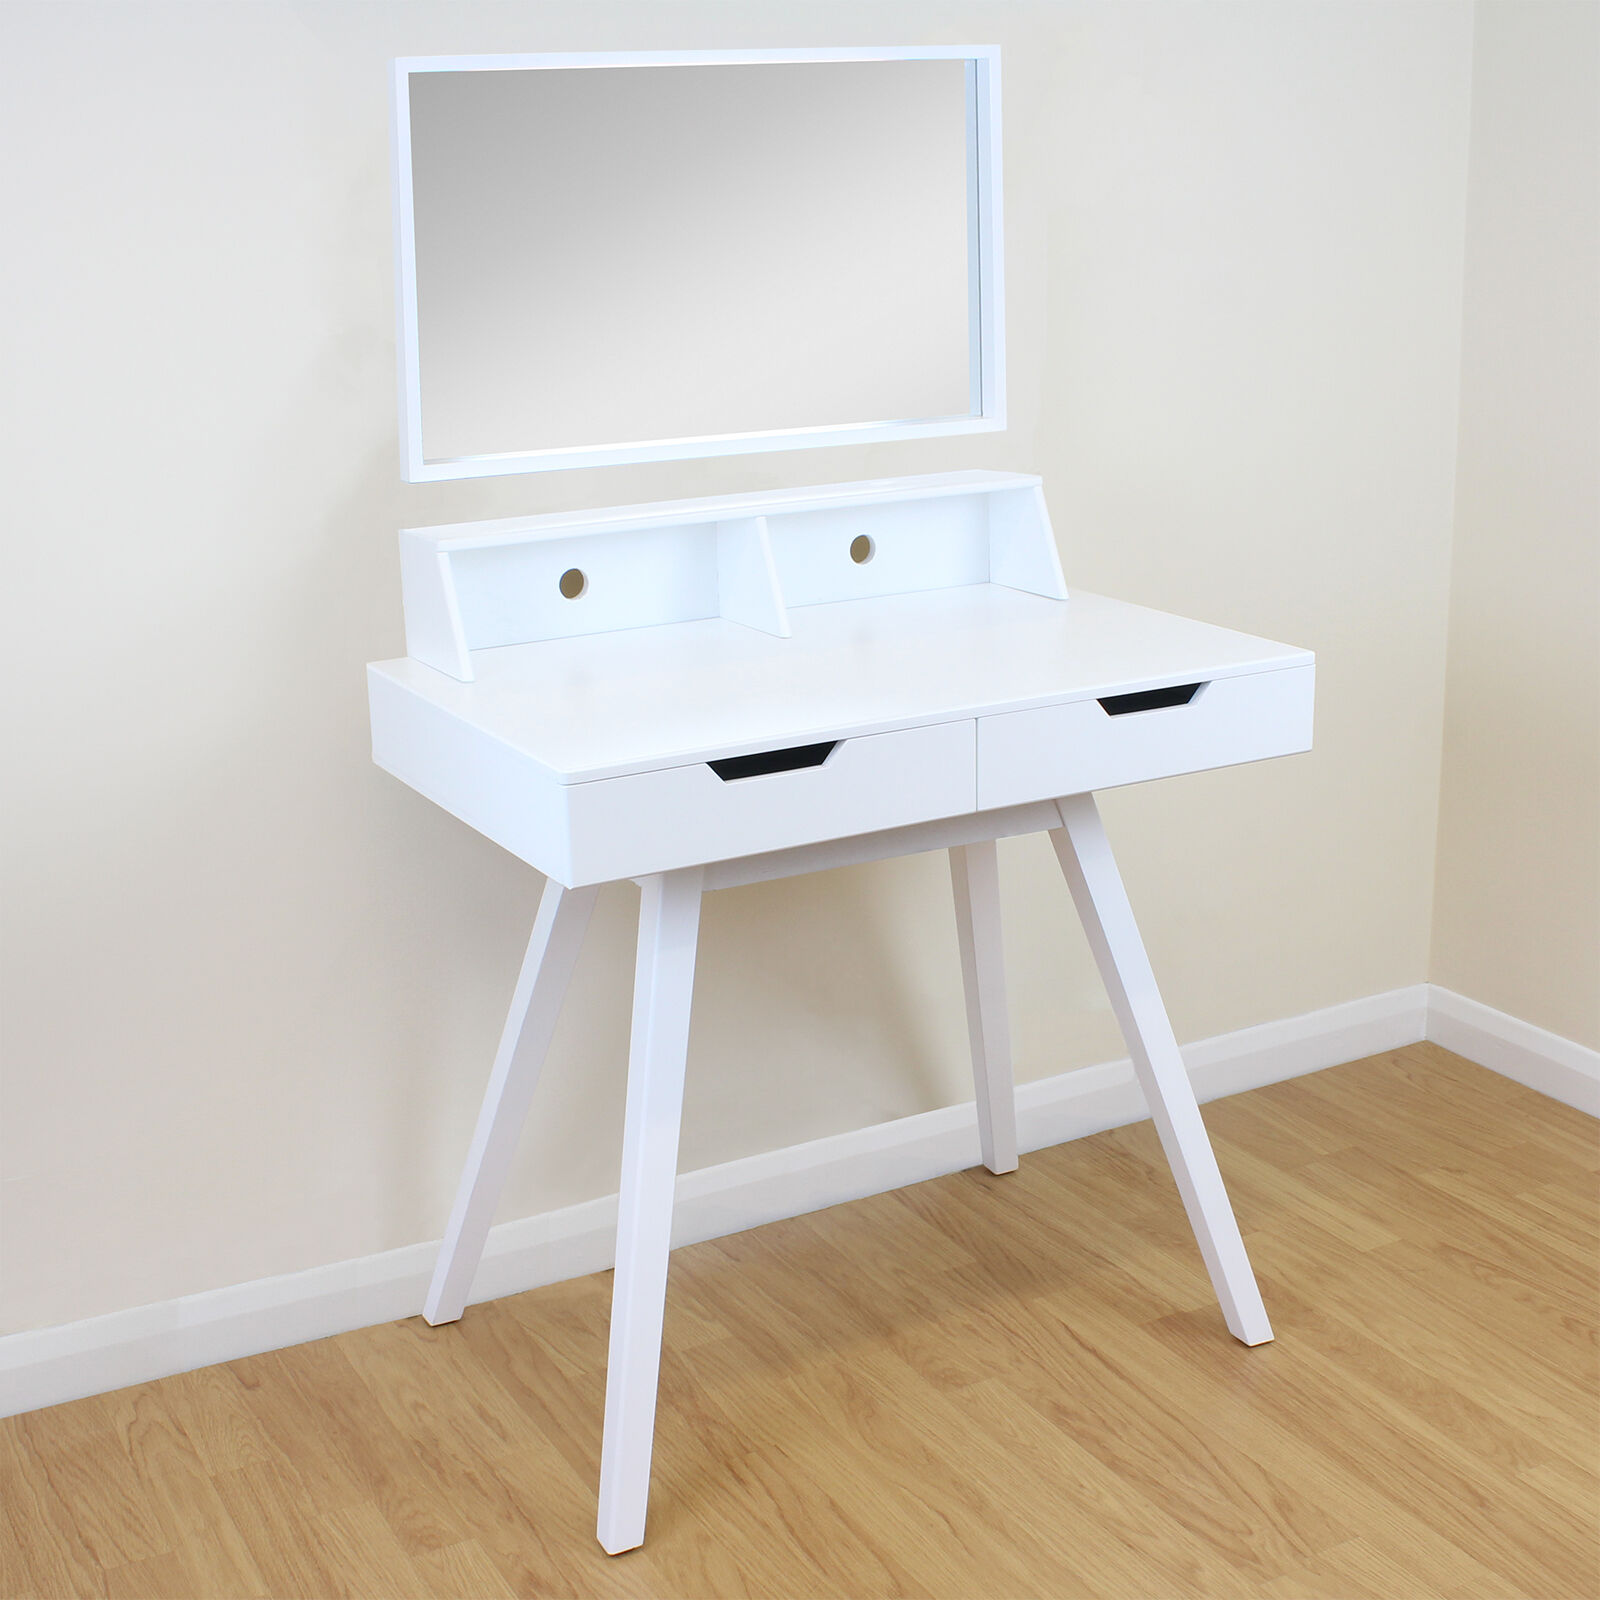 2 Drawer White Vanity Makeup Dressing Table Removable